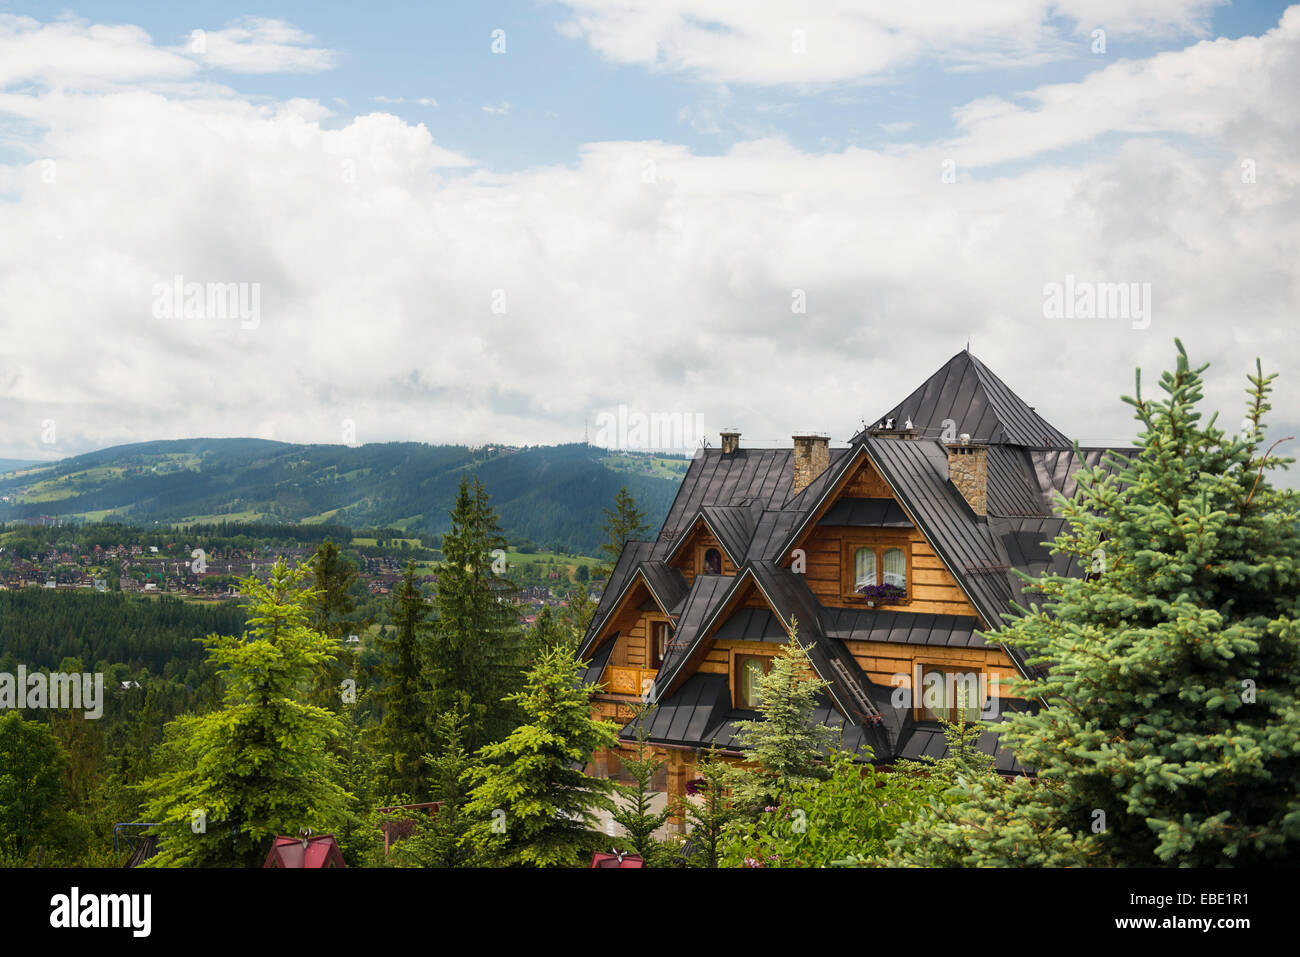 Lodge on the skirts of the Tatra Mountains in the city of Zakopane, Poland. - Stock Image